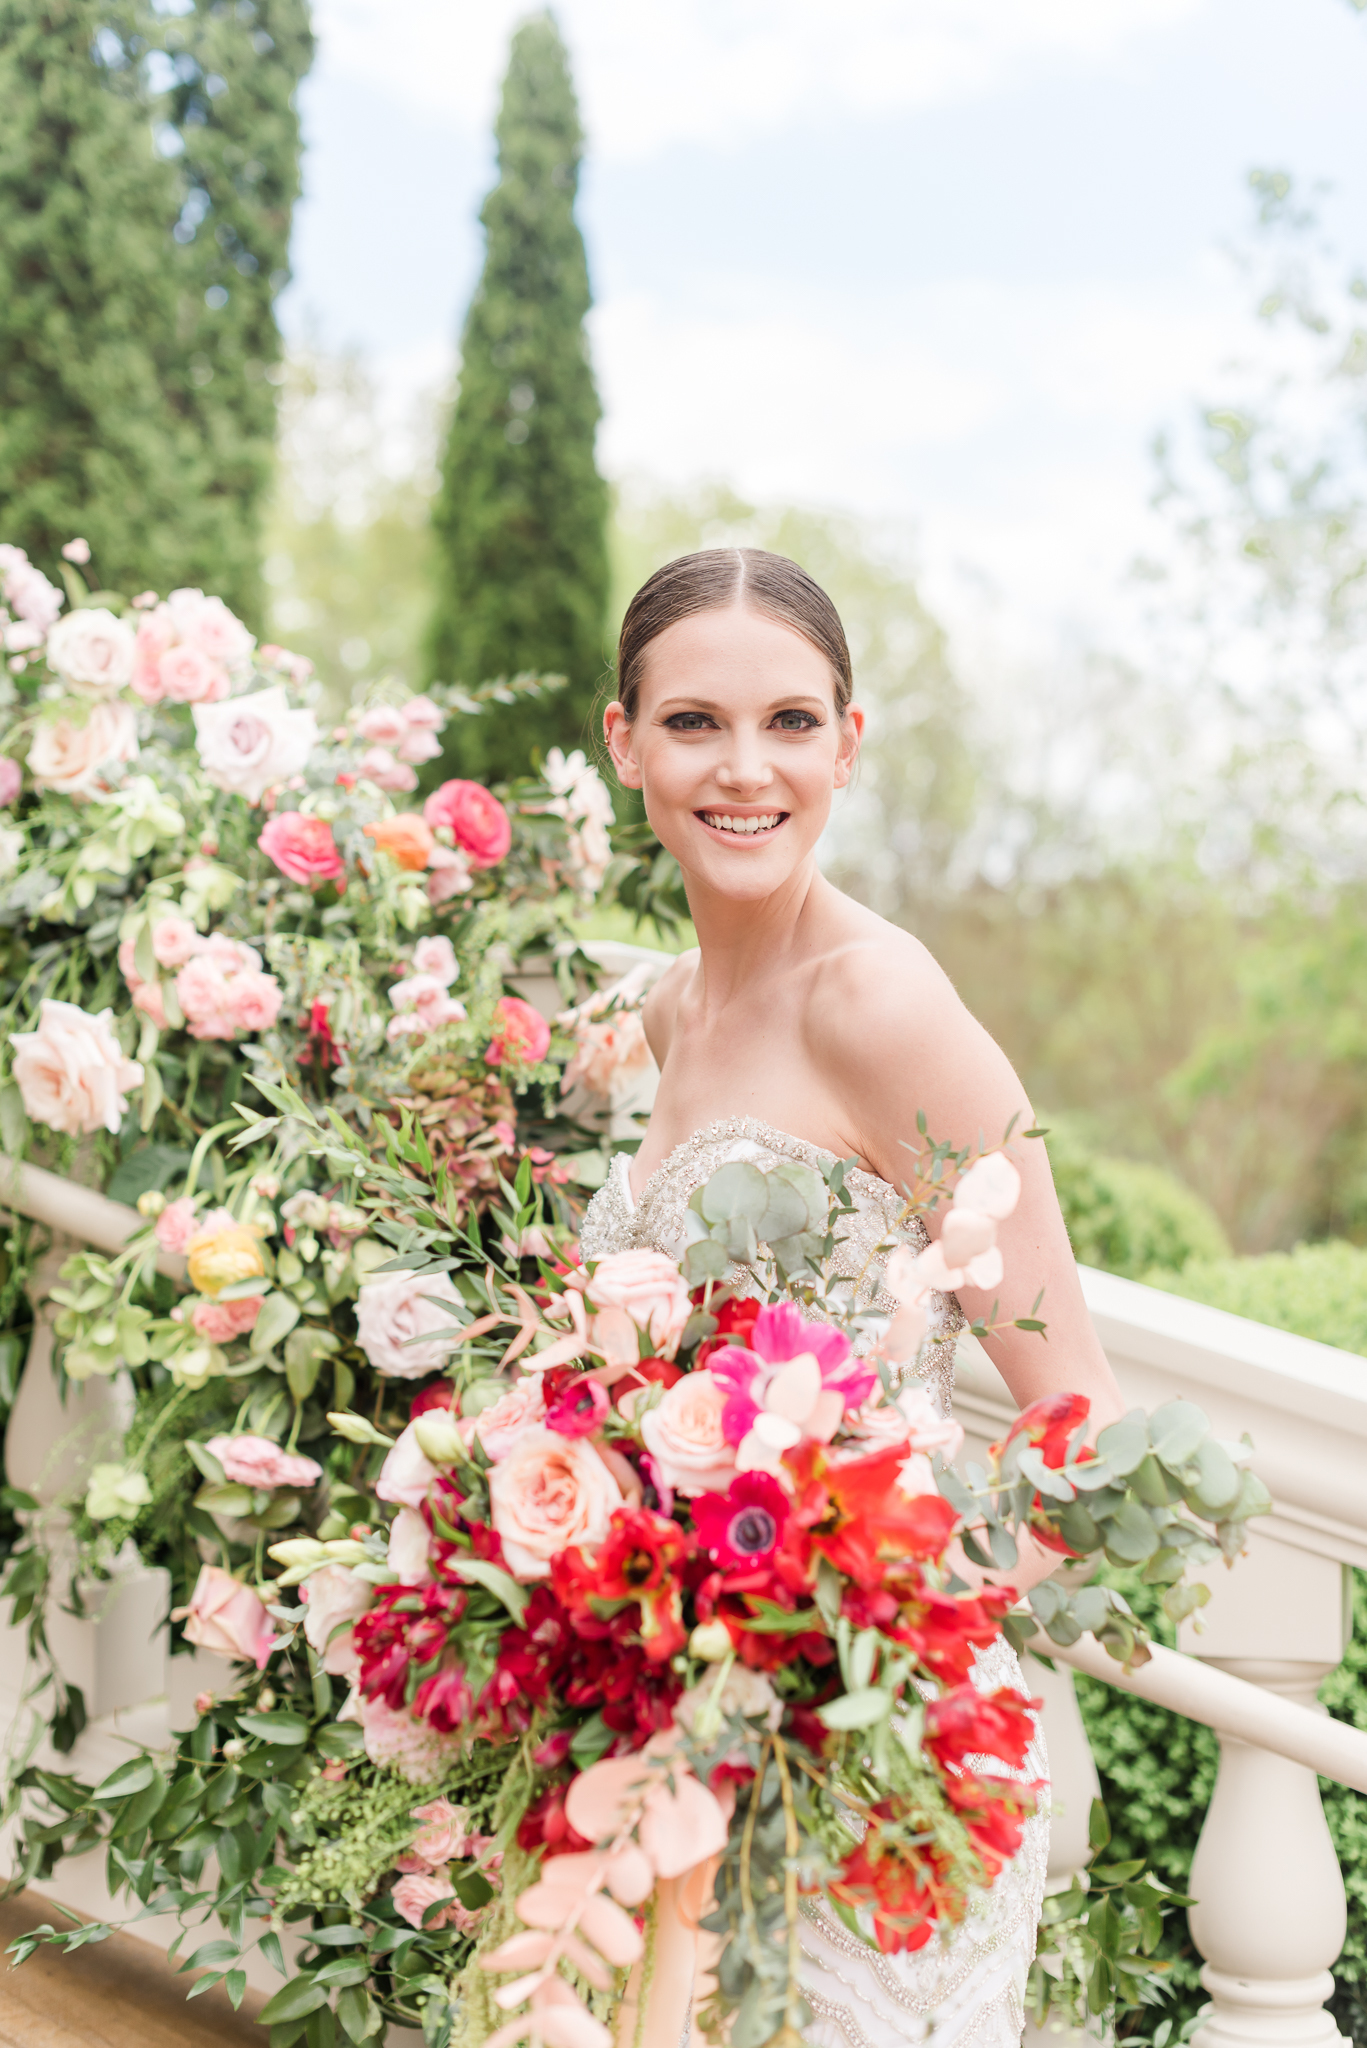 Wedding Day Bridal Portraits with flowers-14.jpg